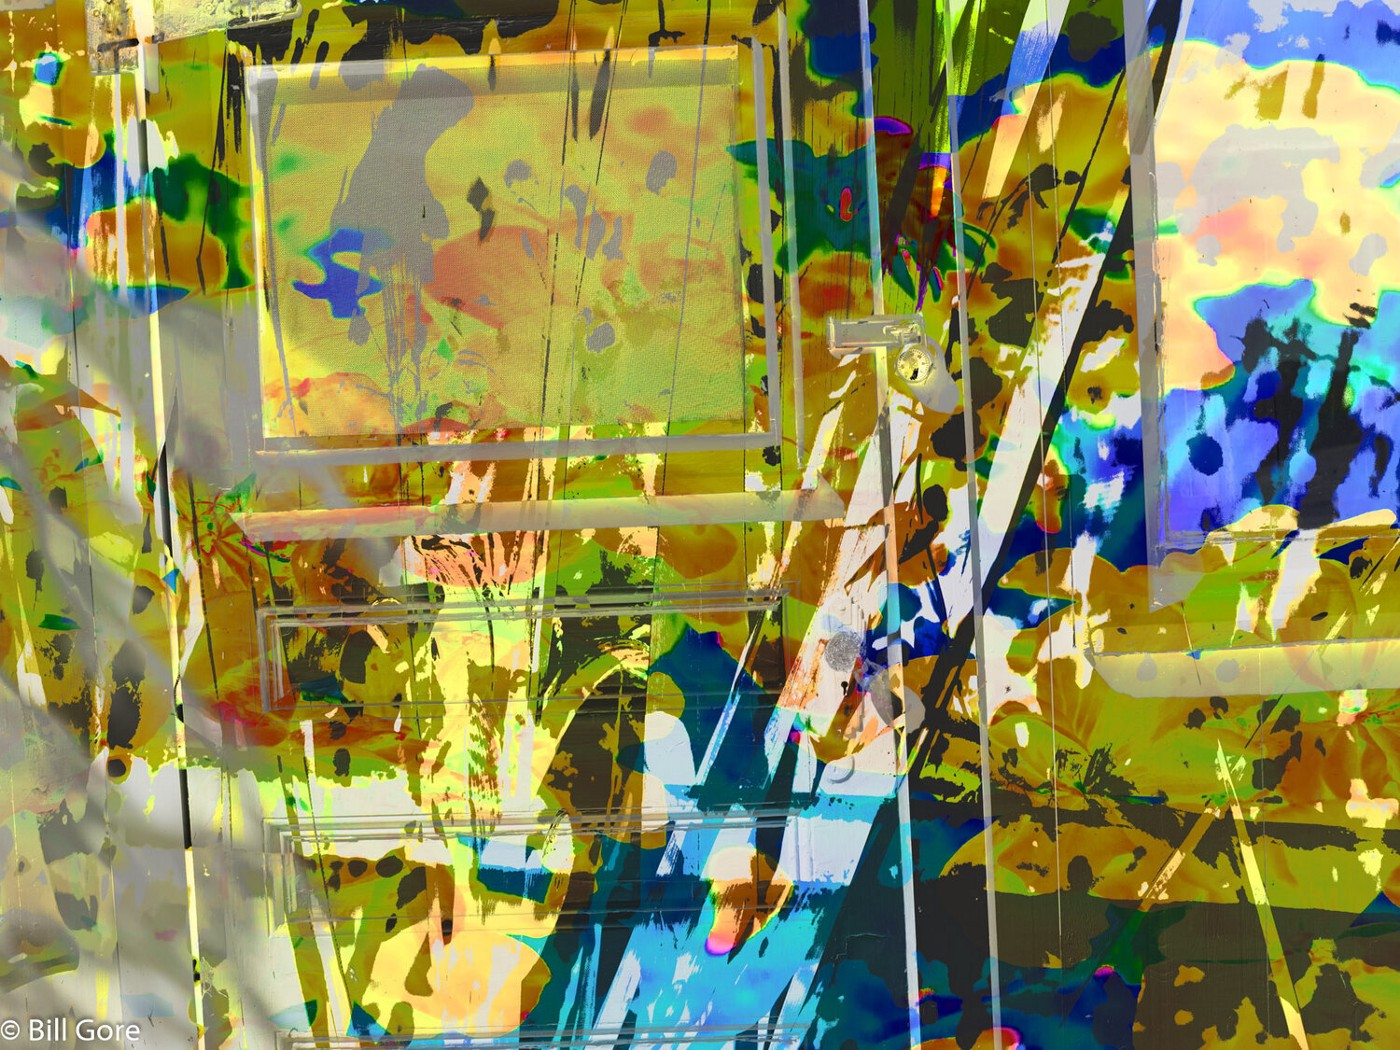 layered photo: geometric and painters palette-like abstraction seen through transparent door.